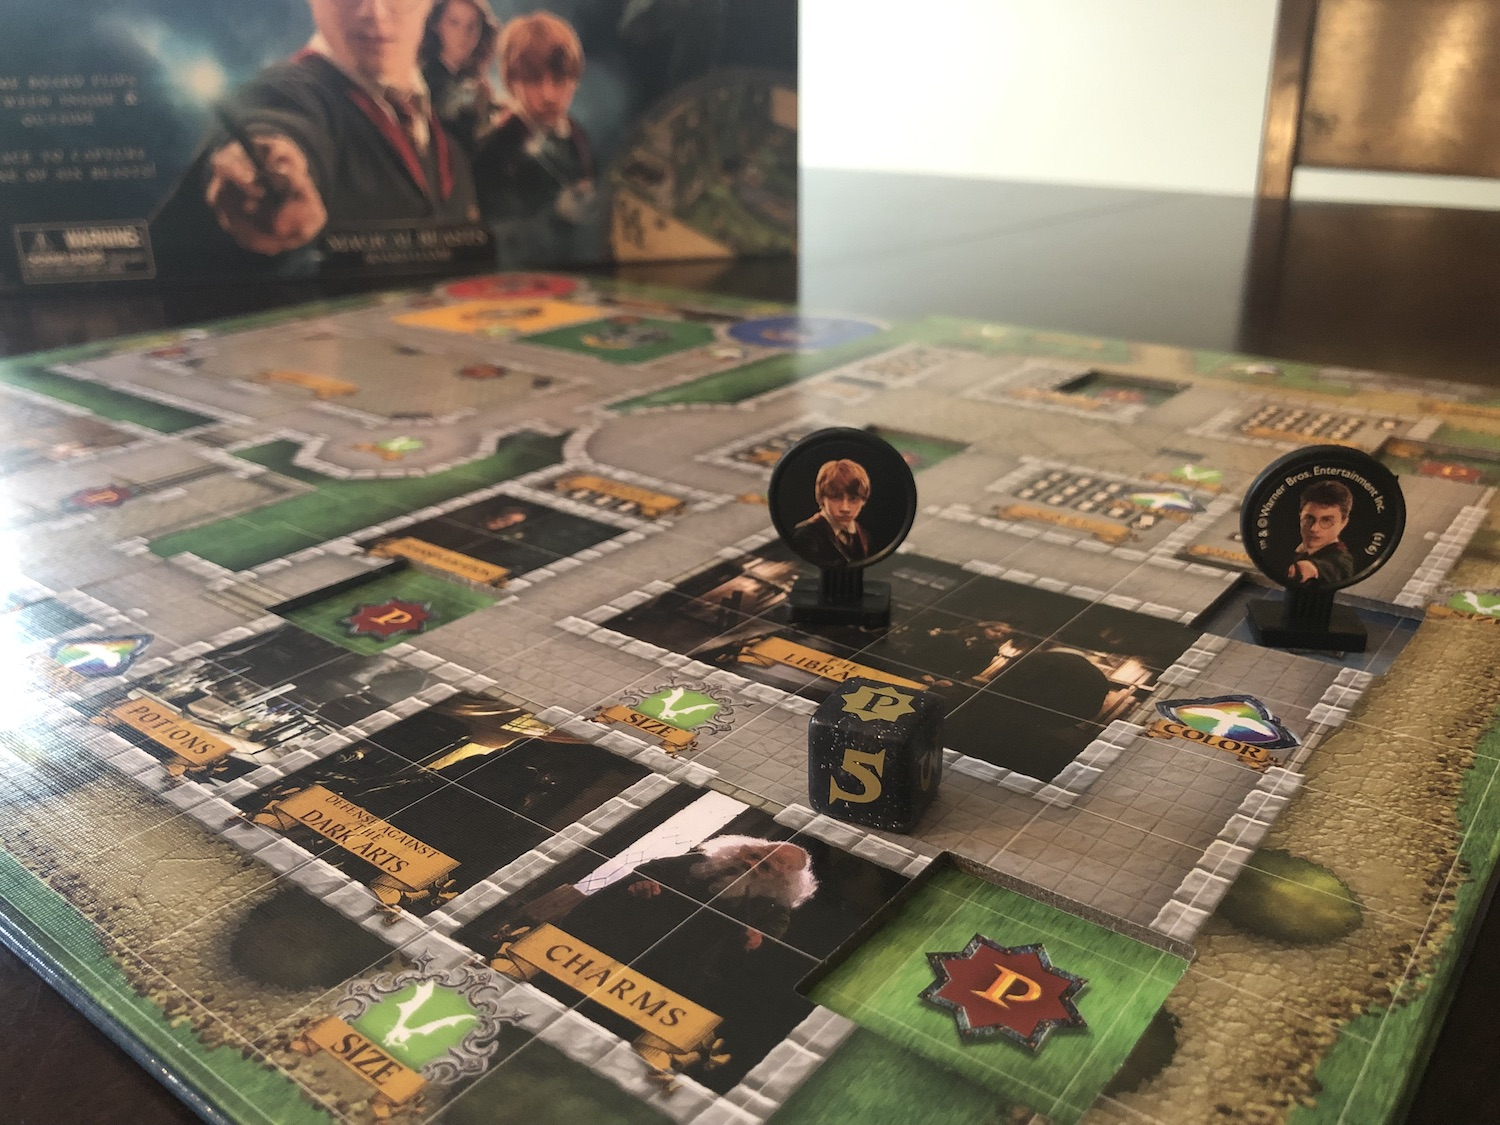 Harry Potter Magical Beasts game pieces